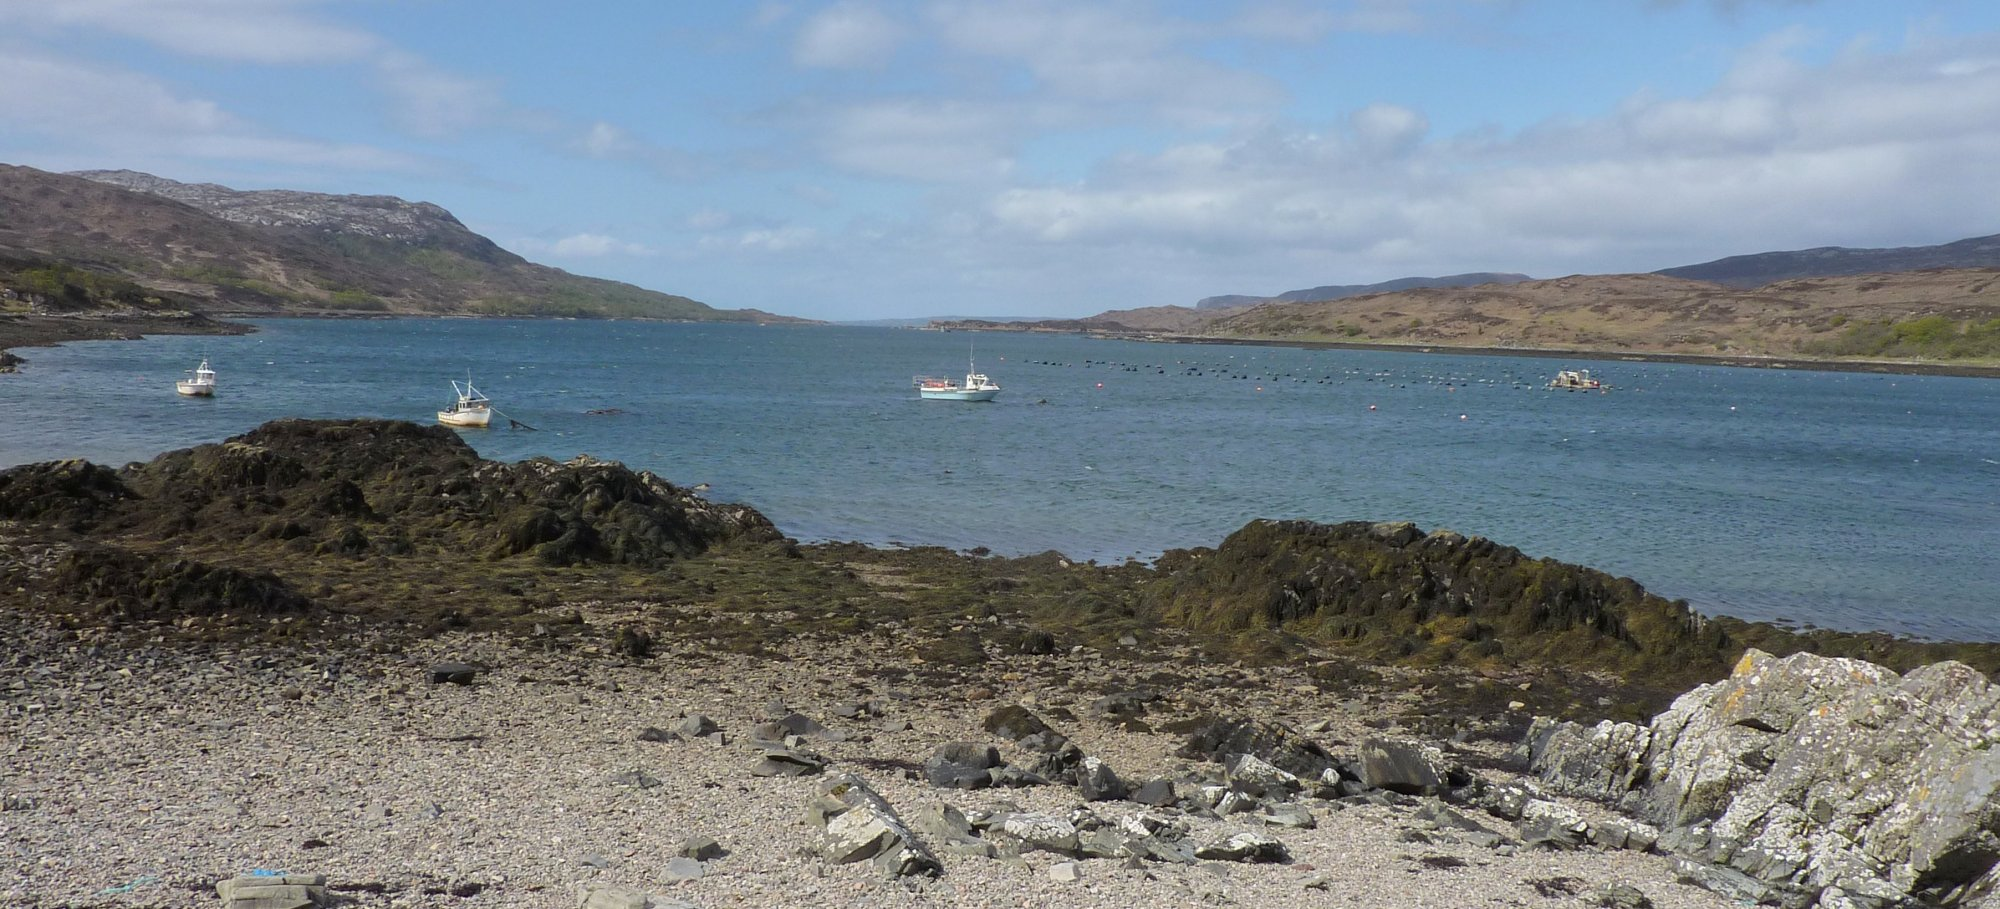 Boats tied up in Drumfearn harbour